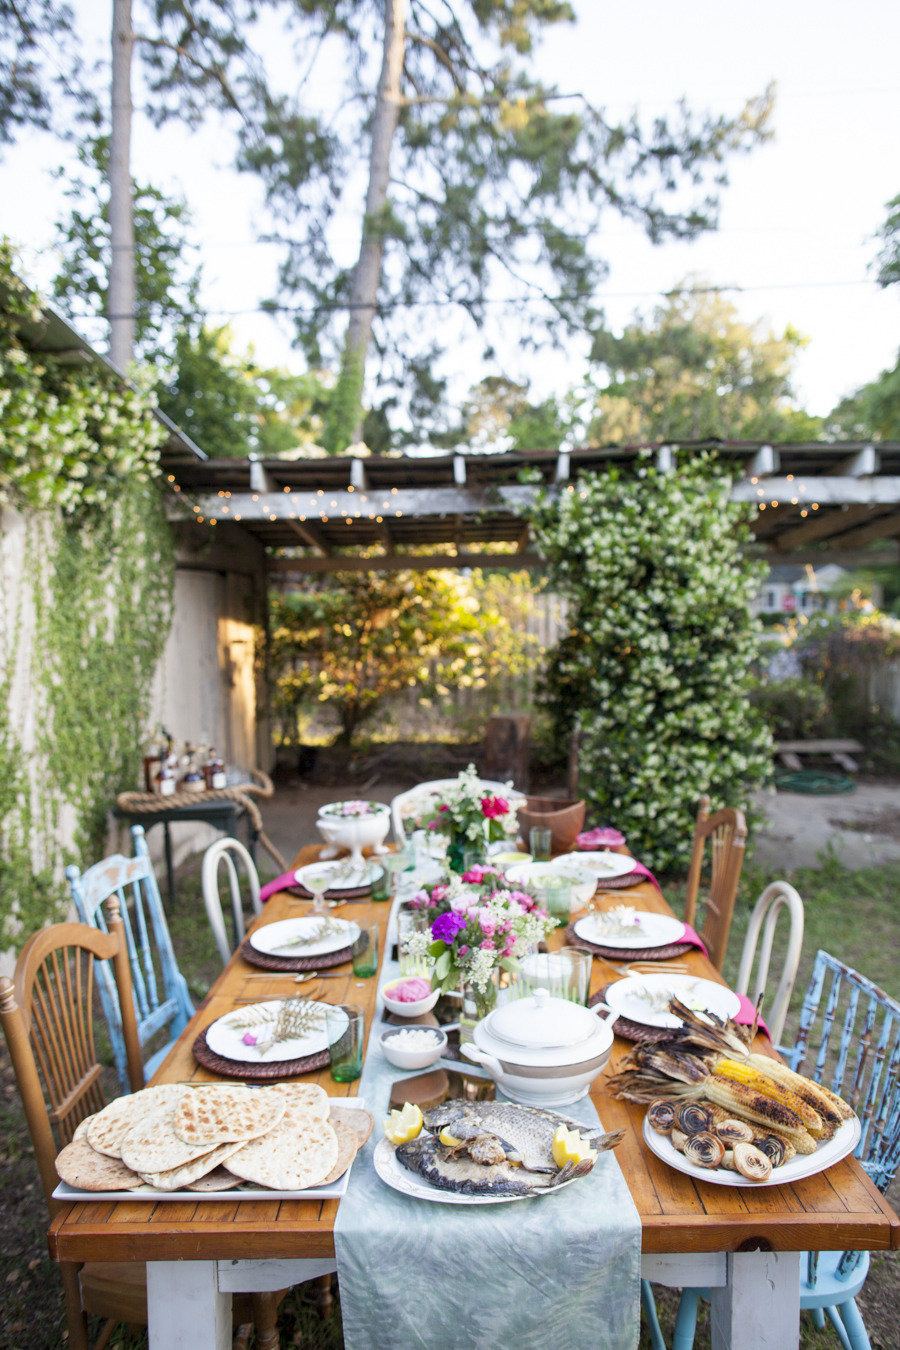 Amazing Decorating Ideas For Backyard Party Zapatalab With inside 11 Smart Ideas How to Make Decorating Ideas For Backyard Party